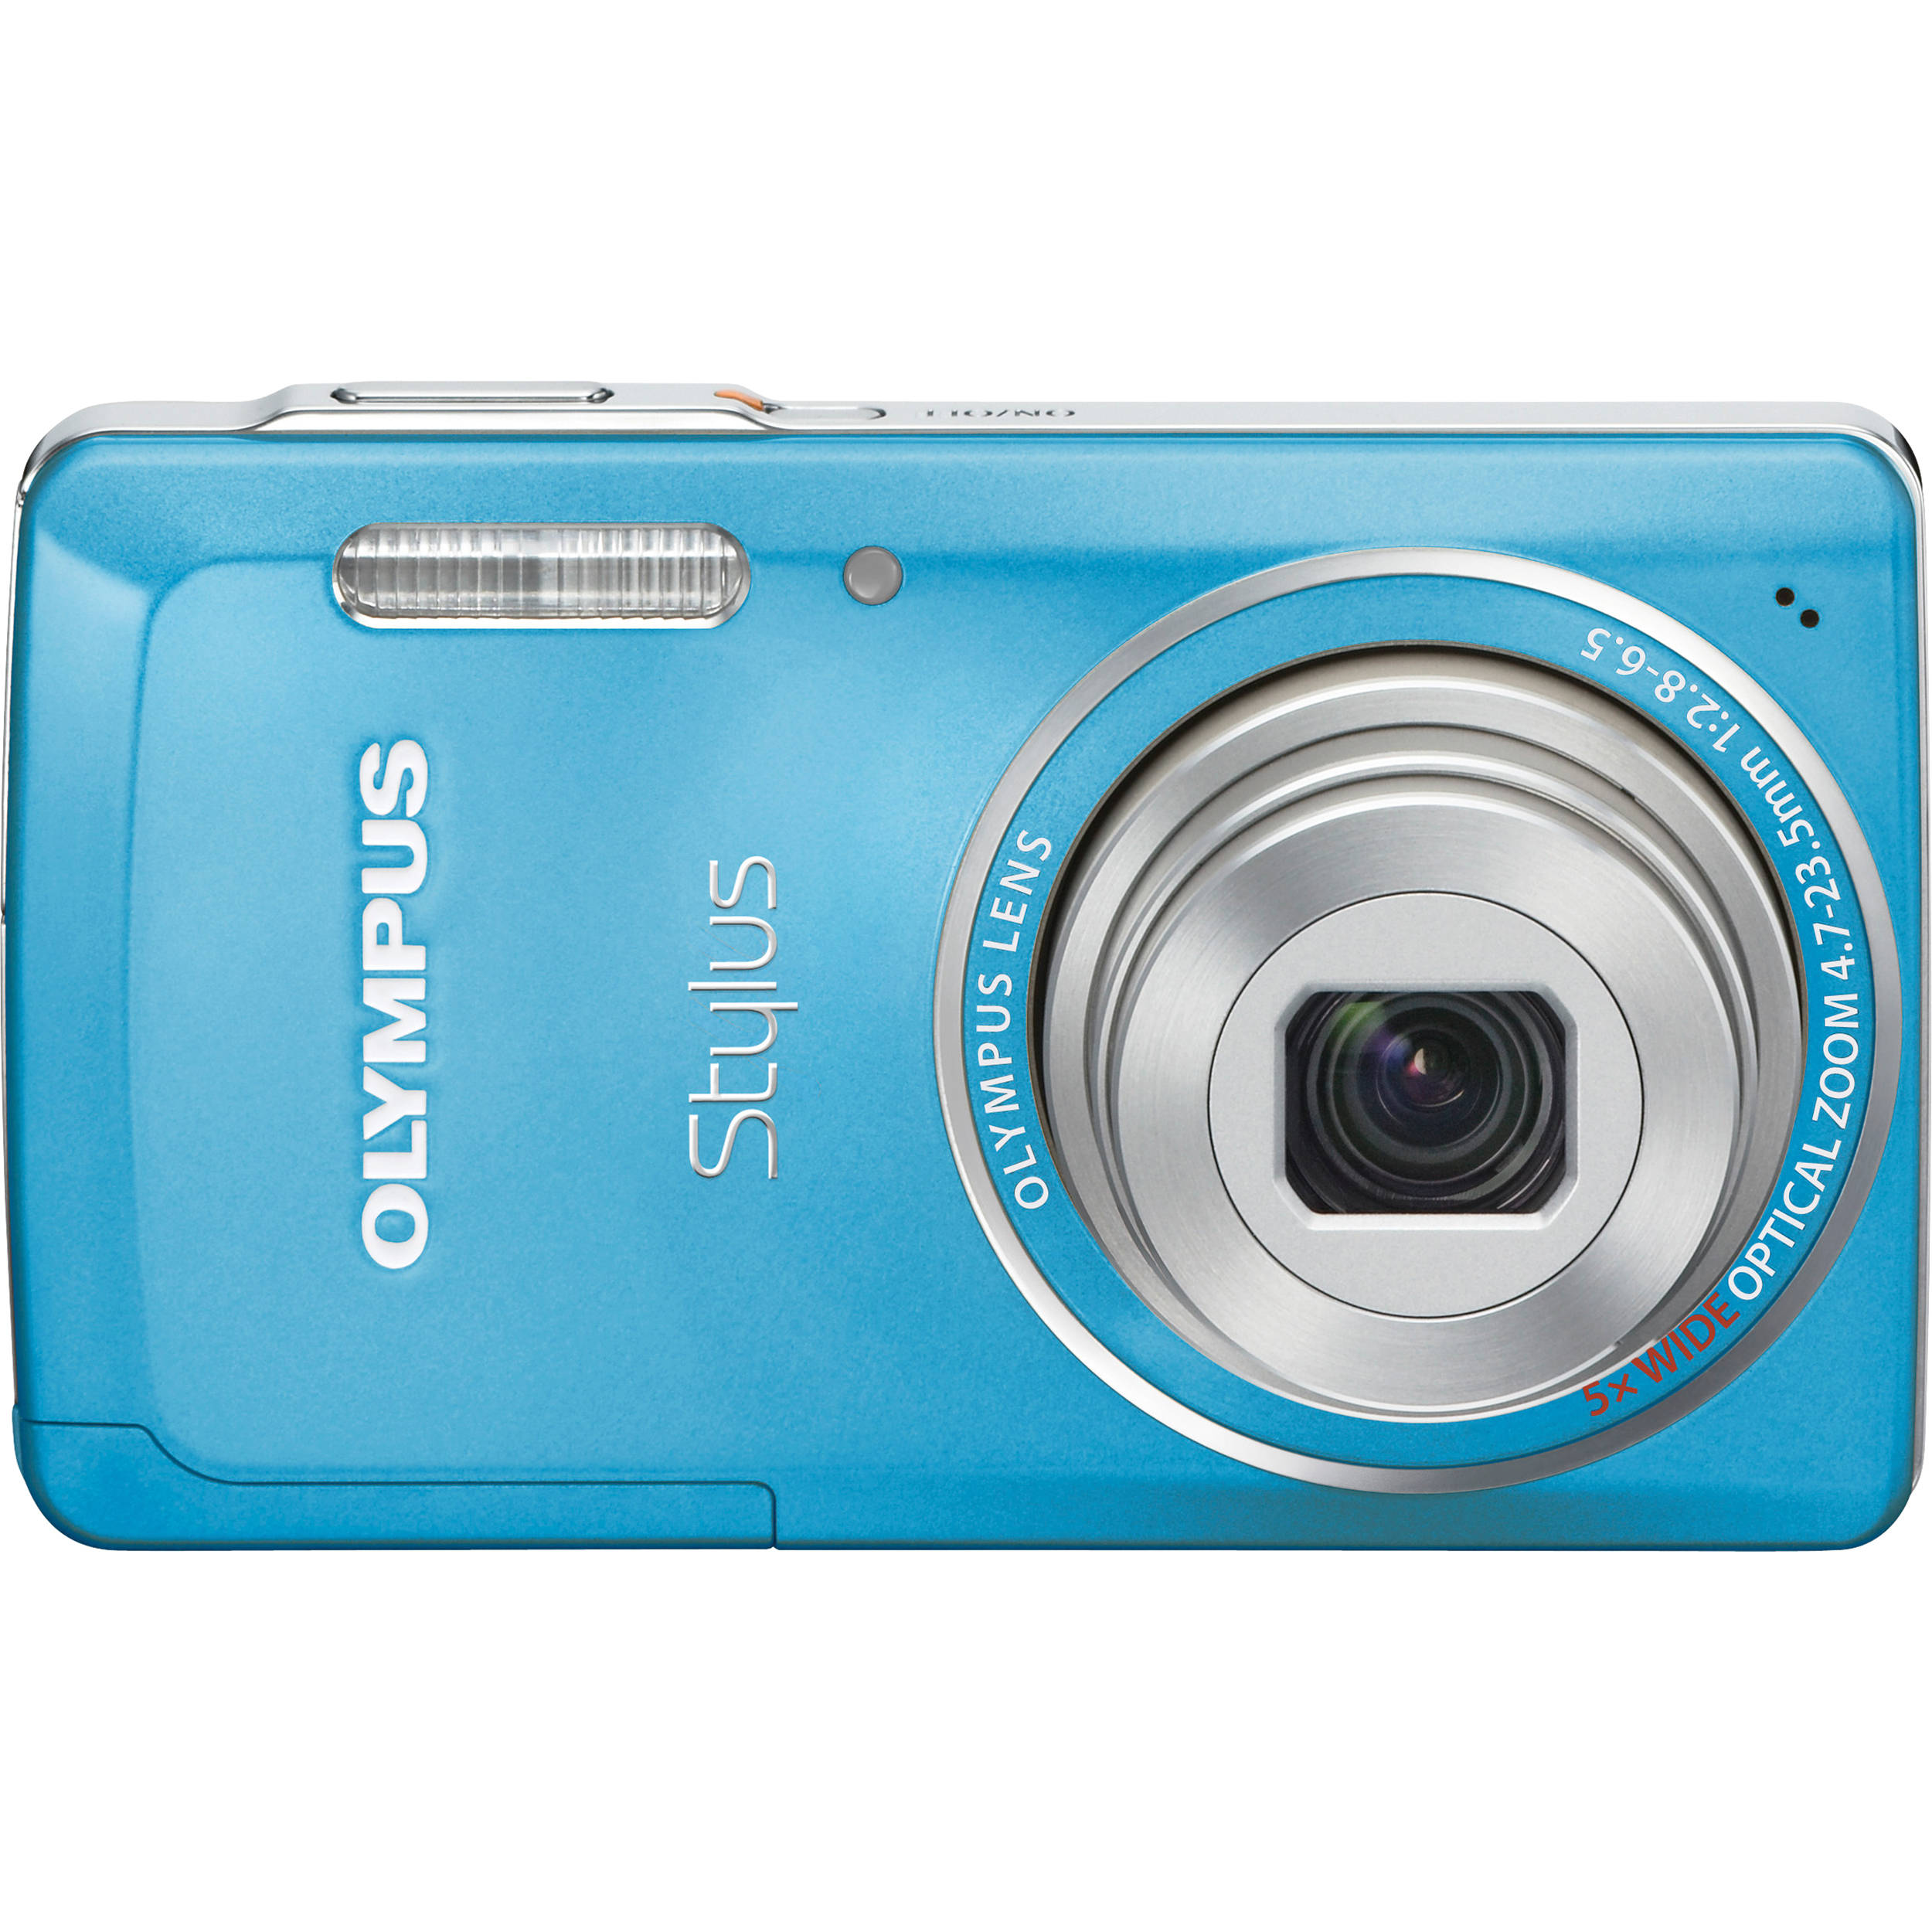 olympus stylus 5010 driver for windows download rh ipmaster xyz